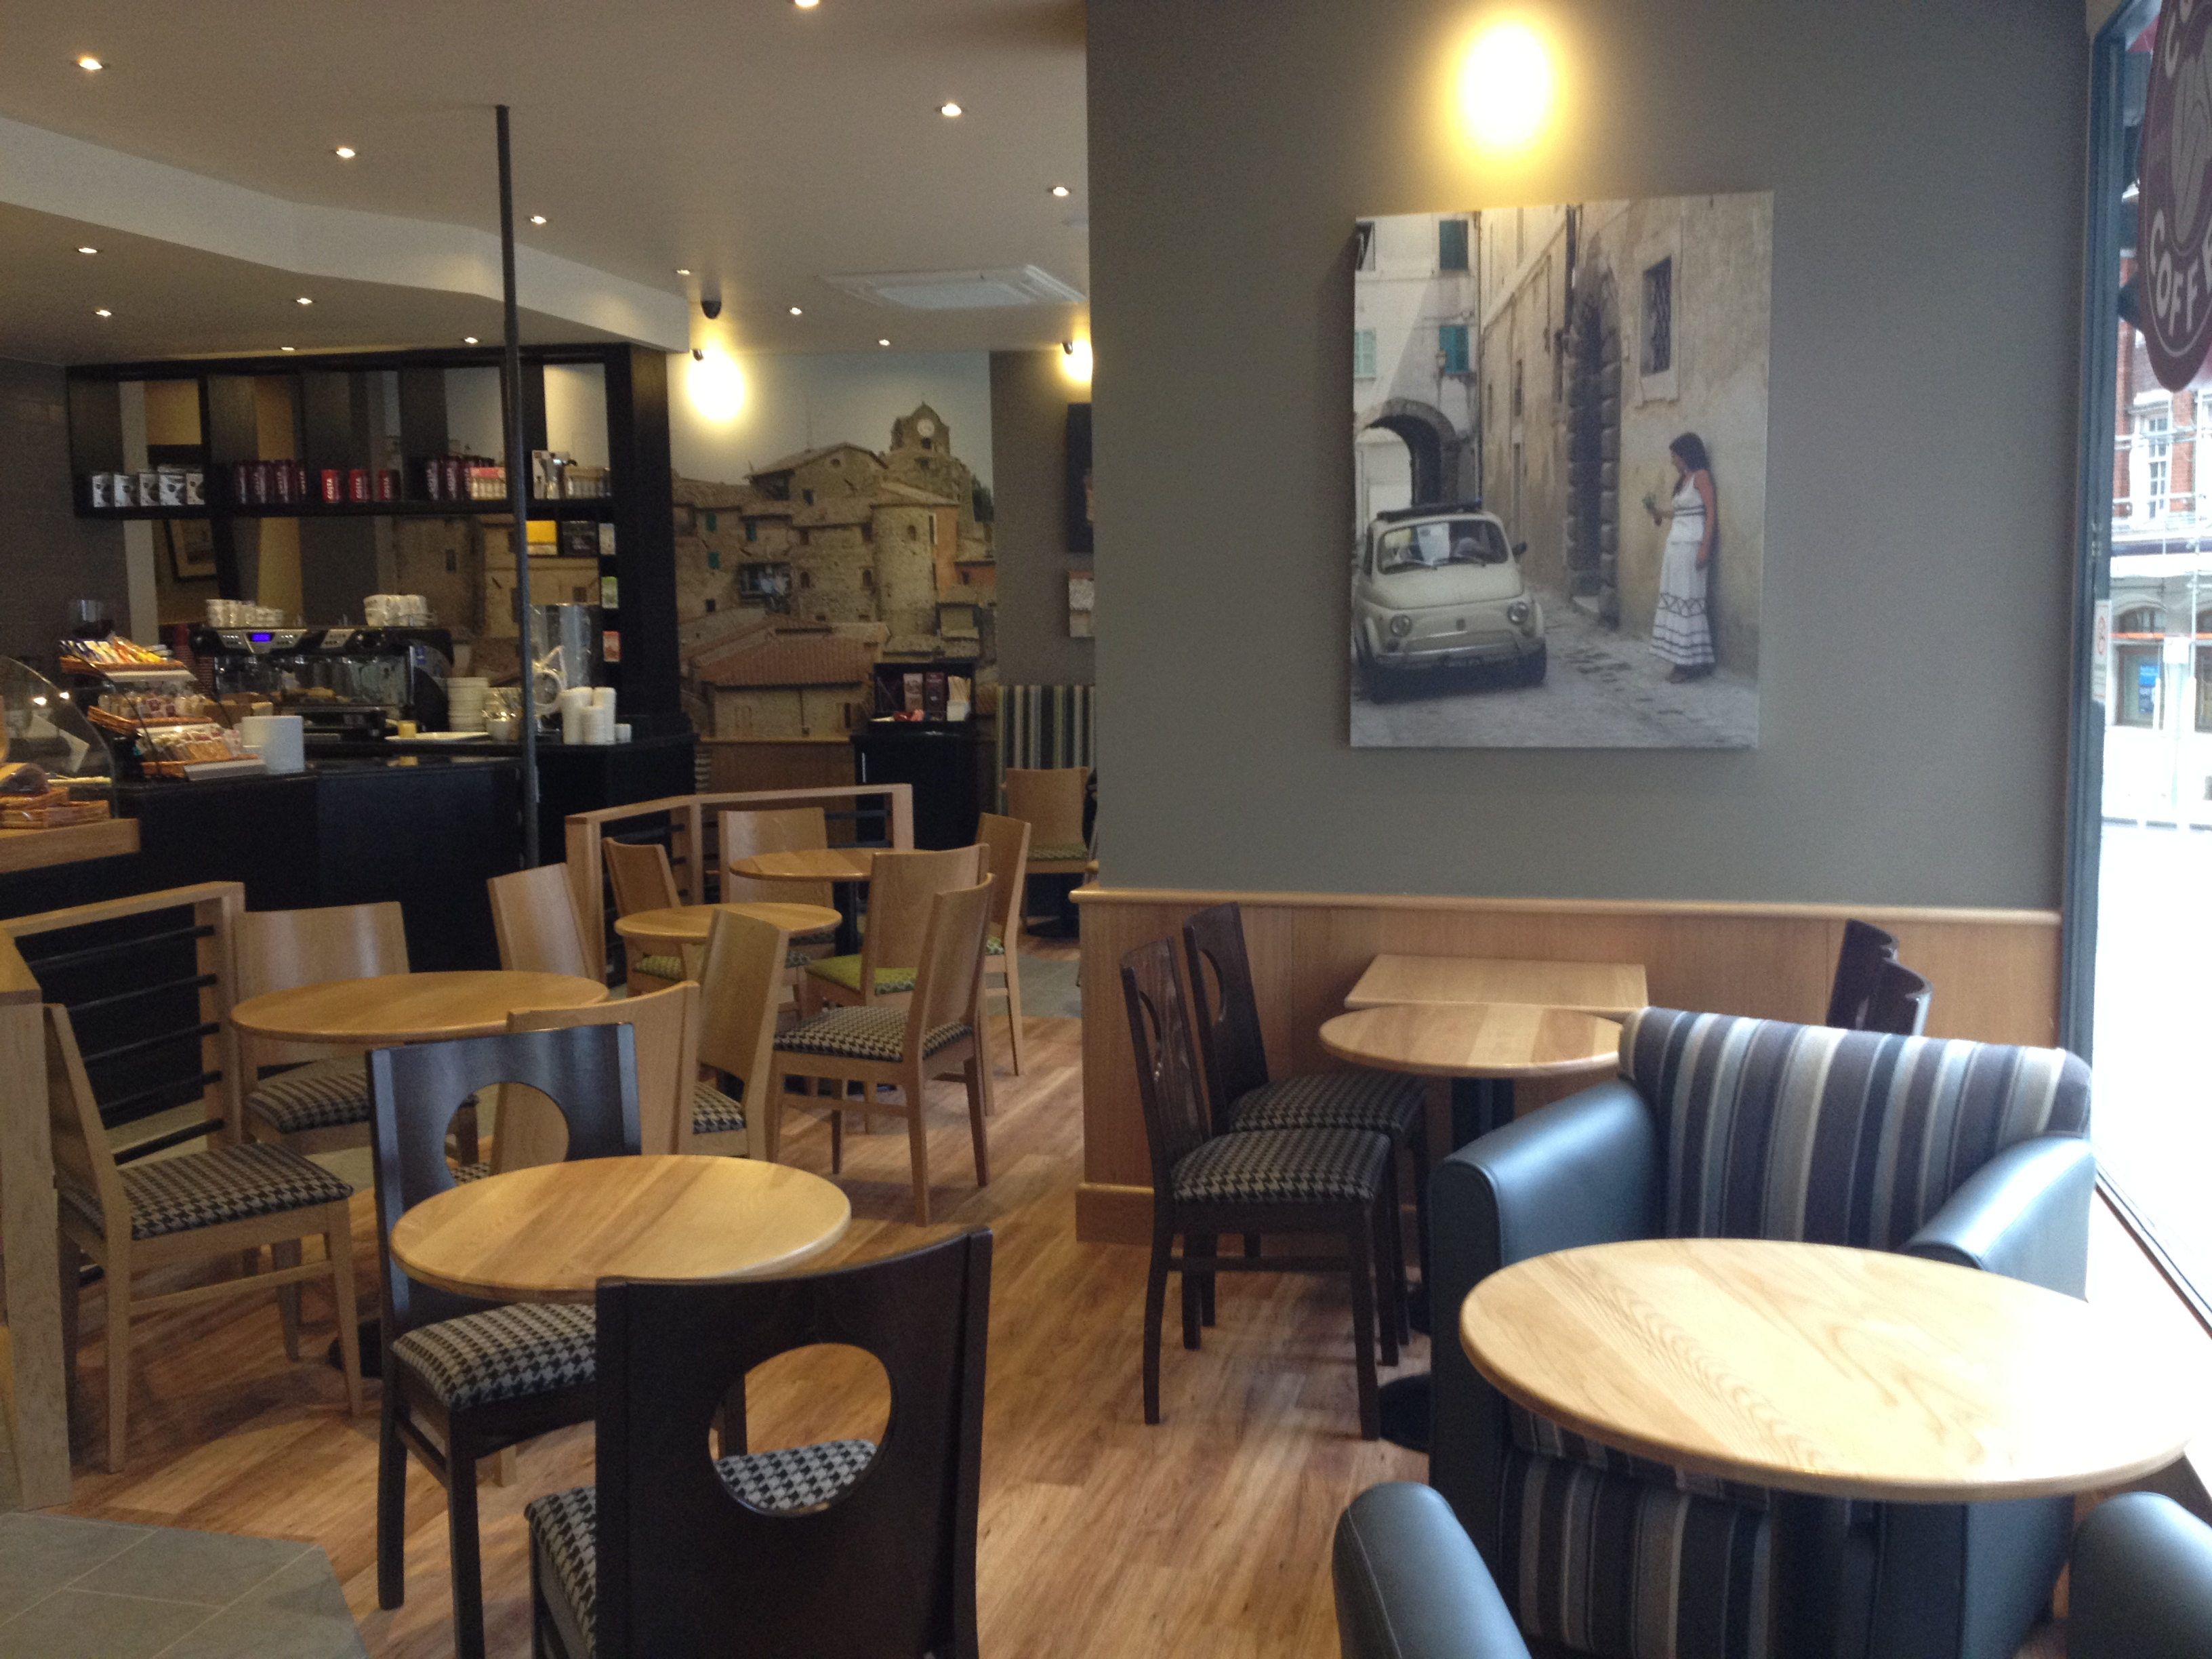 Jephsons shopfitters uk interior fitout